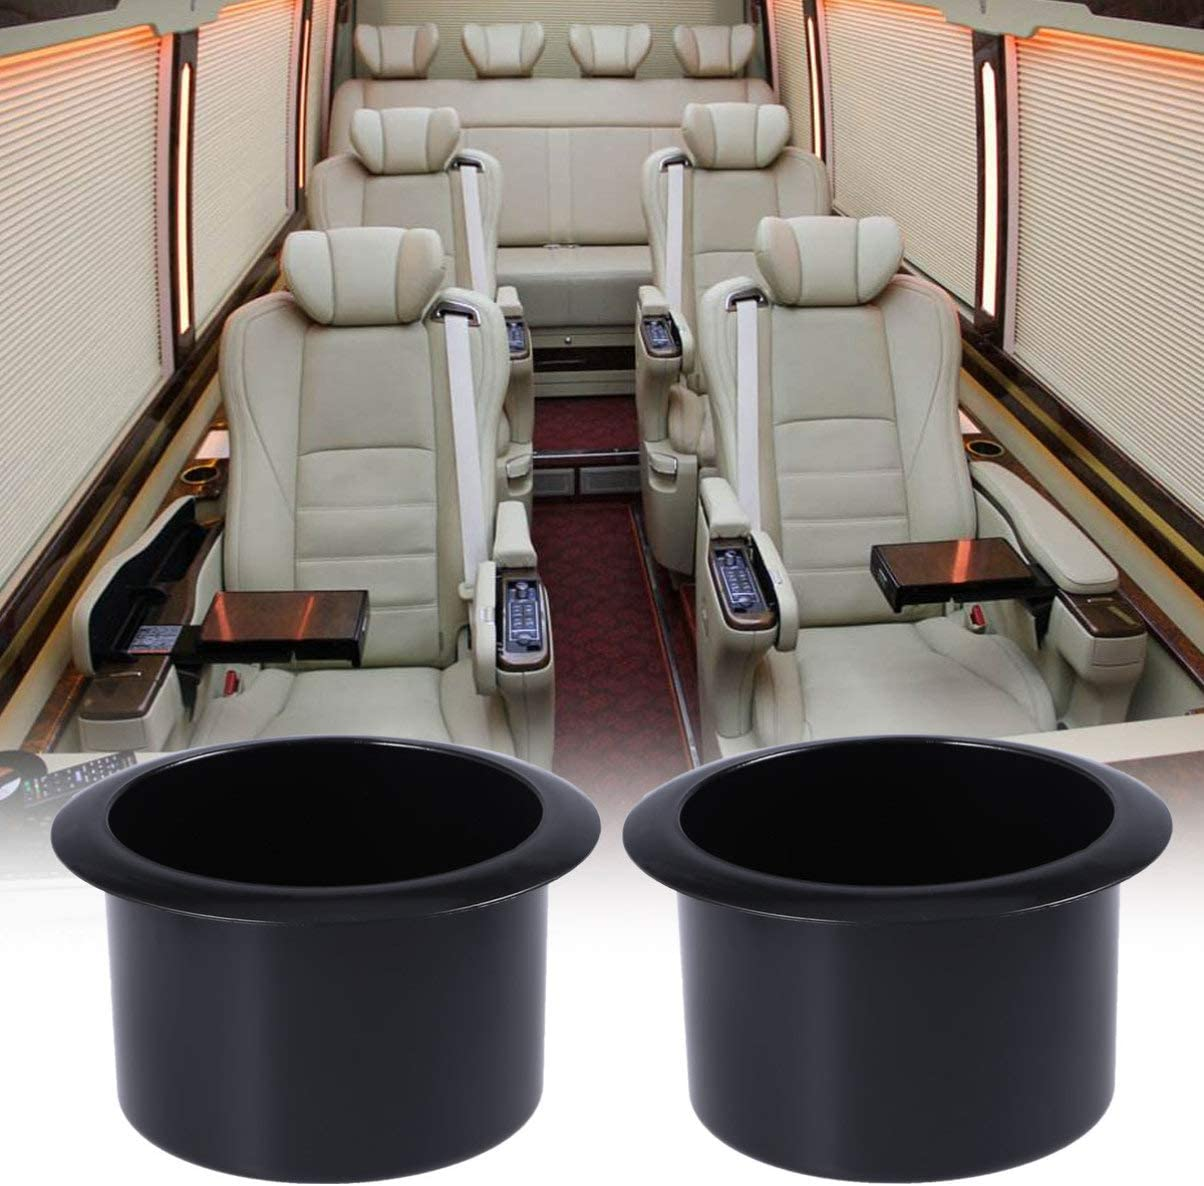 Cabilock 2pcs Plastic Black Insert Cup Can Drink Holder for Poker Table Car Couch Recliner Sofa Truck